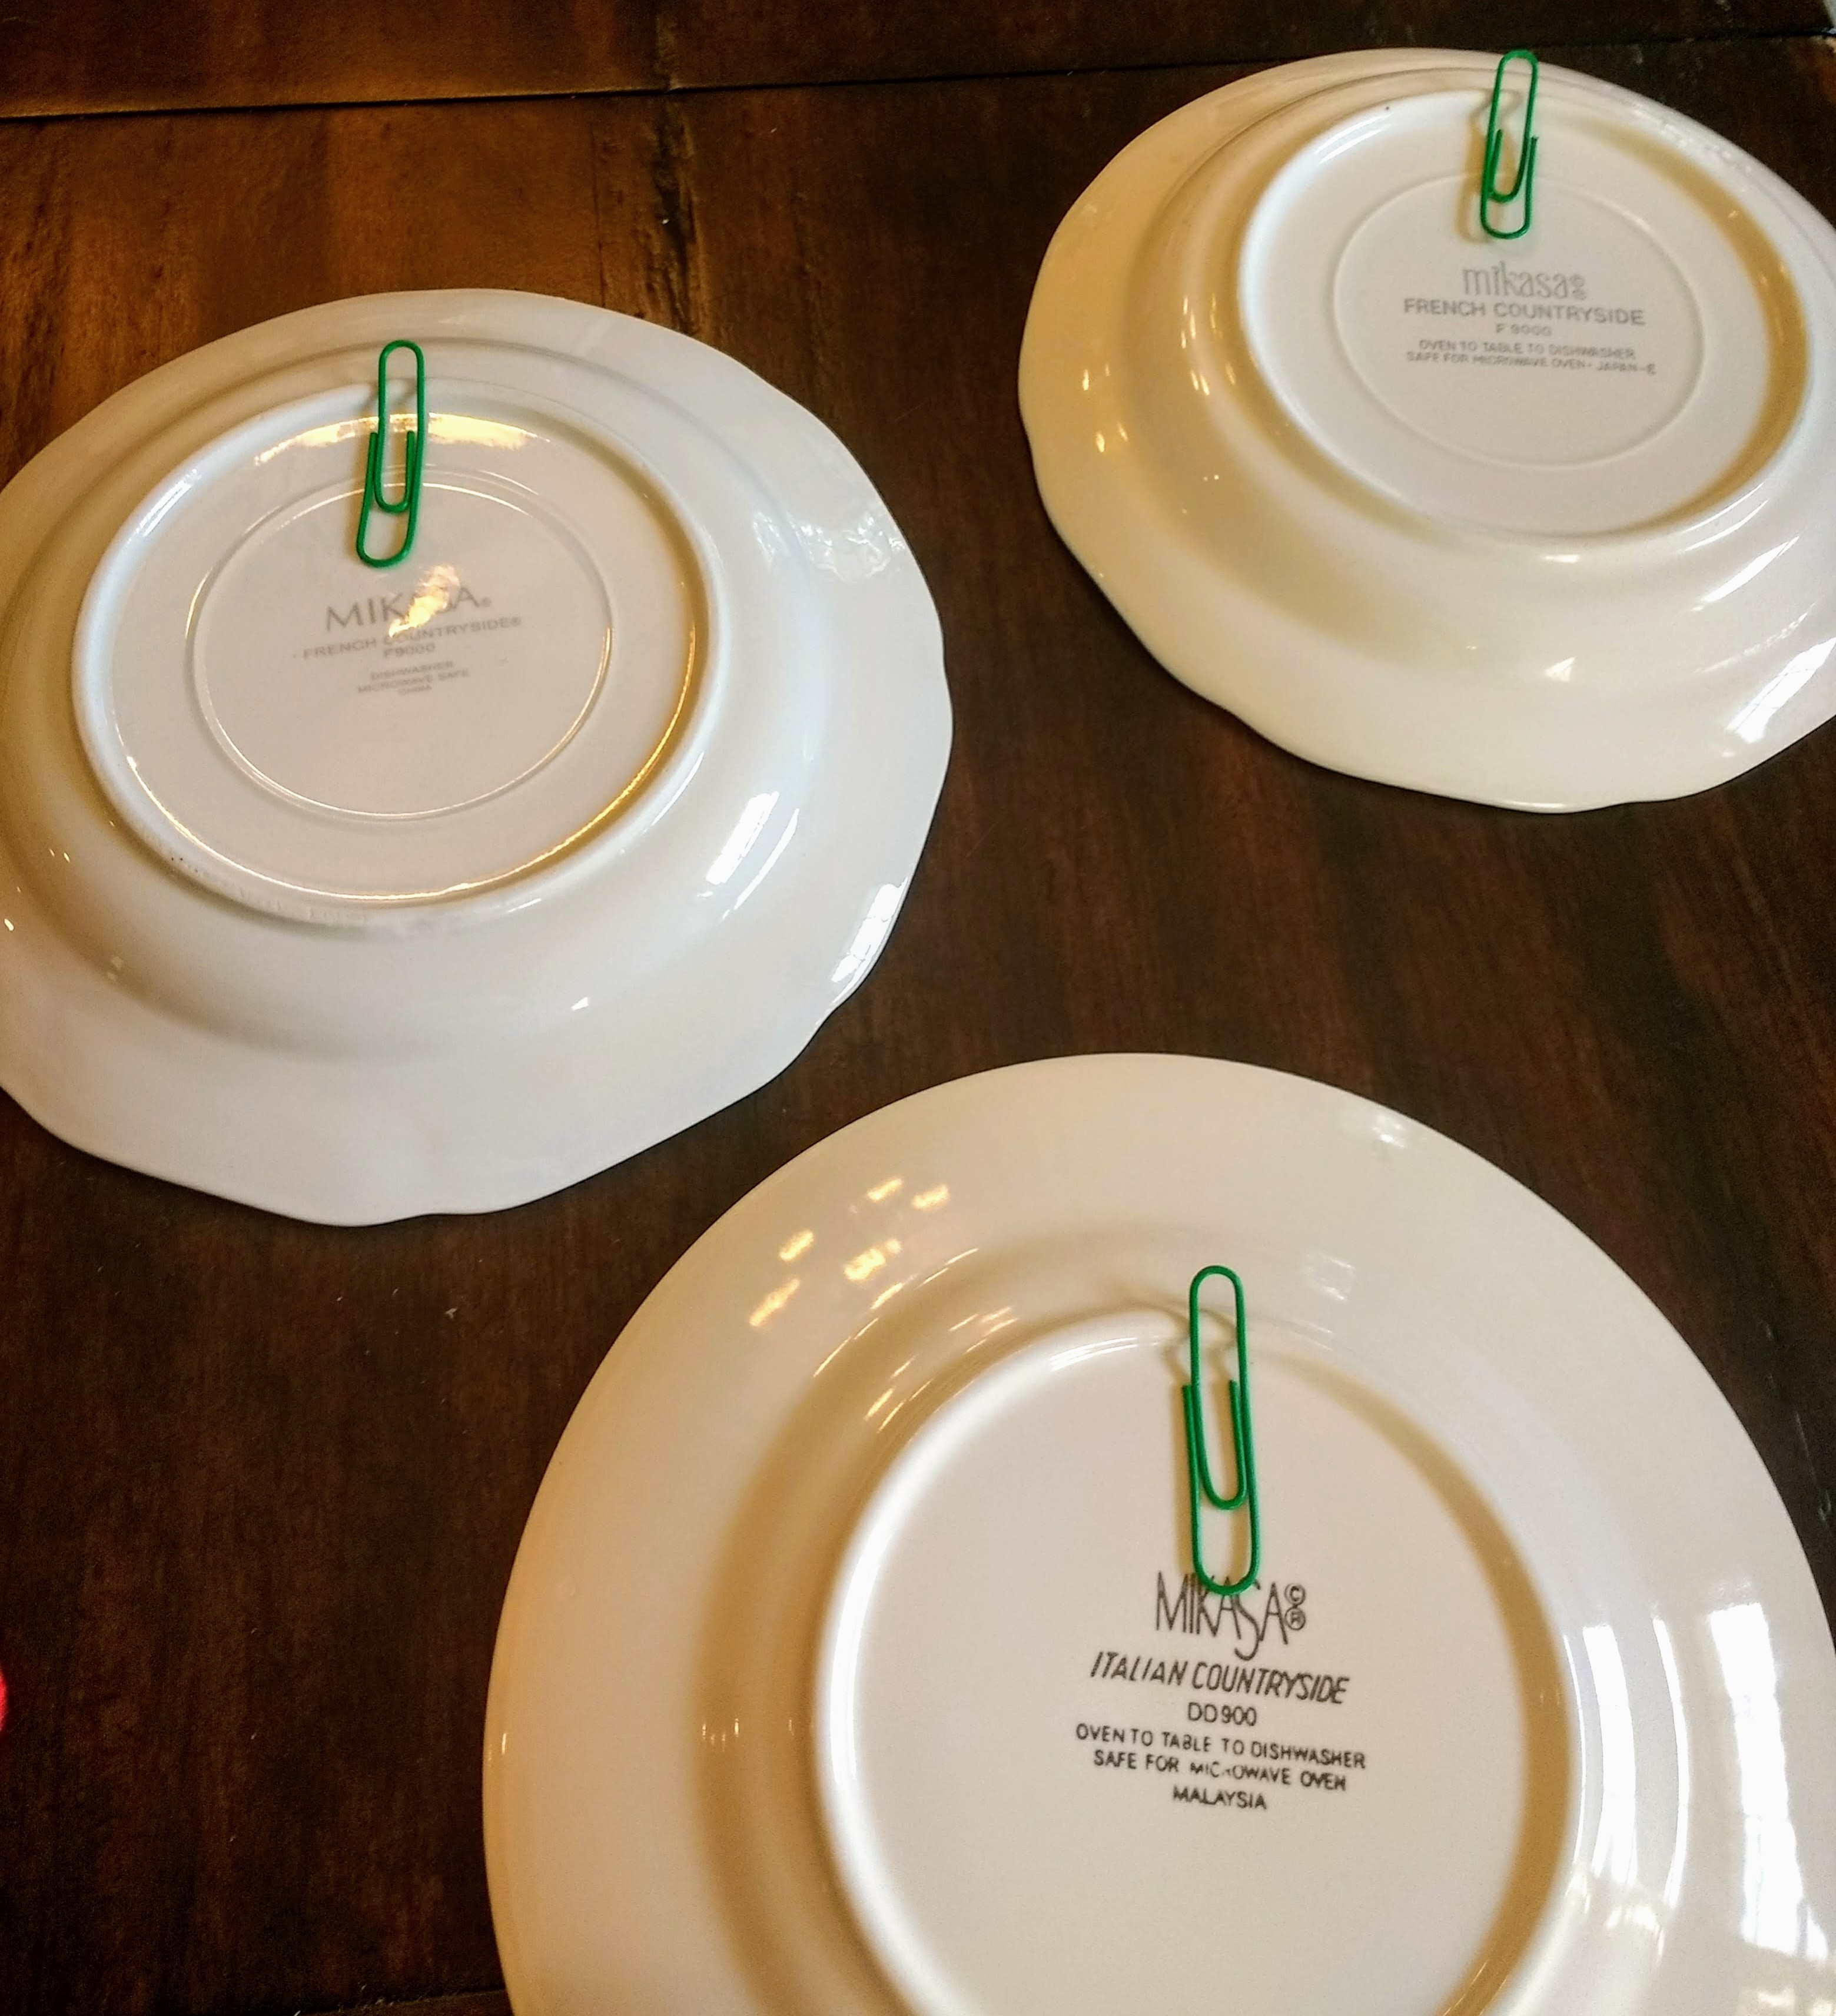 DIY Plate Hangers With Paperclips